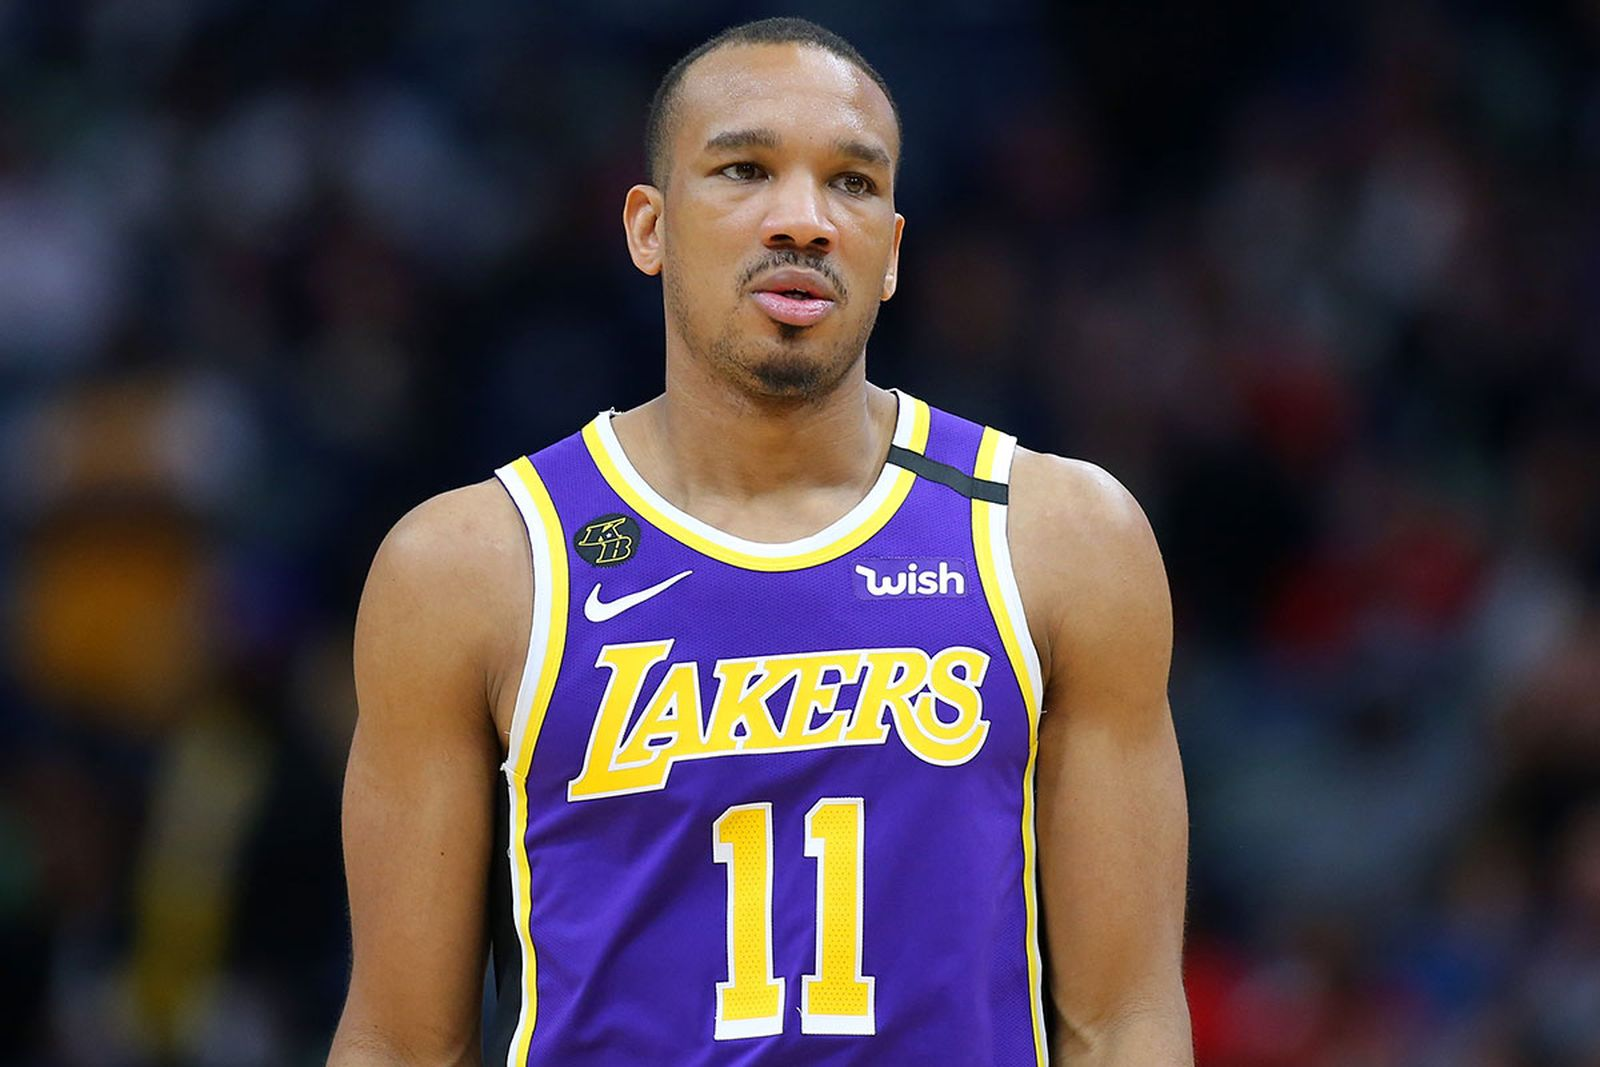 Avery Bradley #11 of the Los Angeles Lakers reacts against the New Orleans Pelicans during the second half at the Smoothie King Center